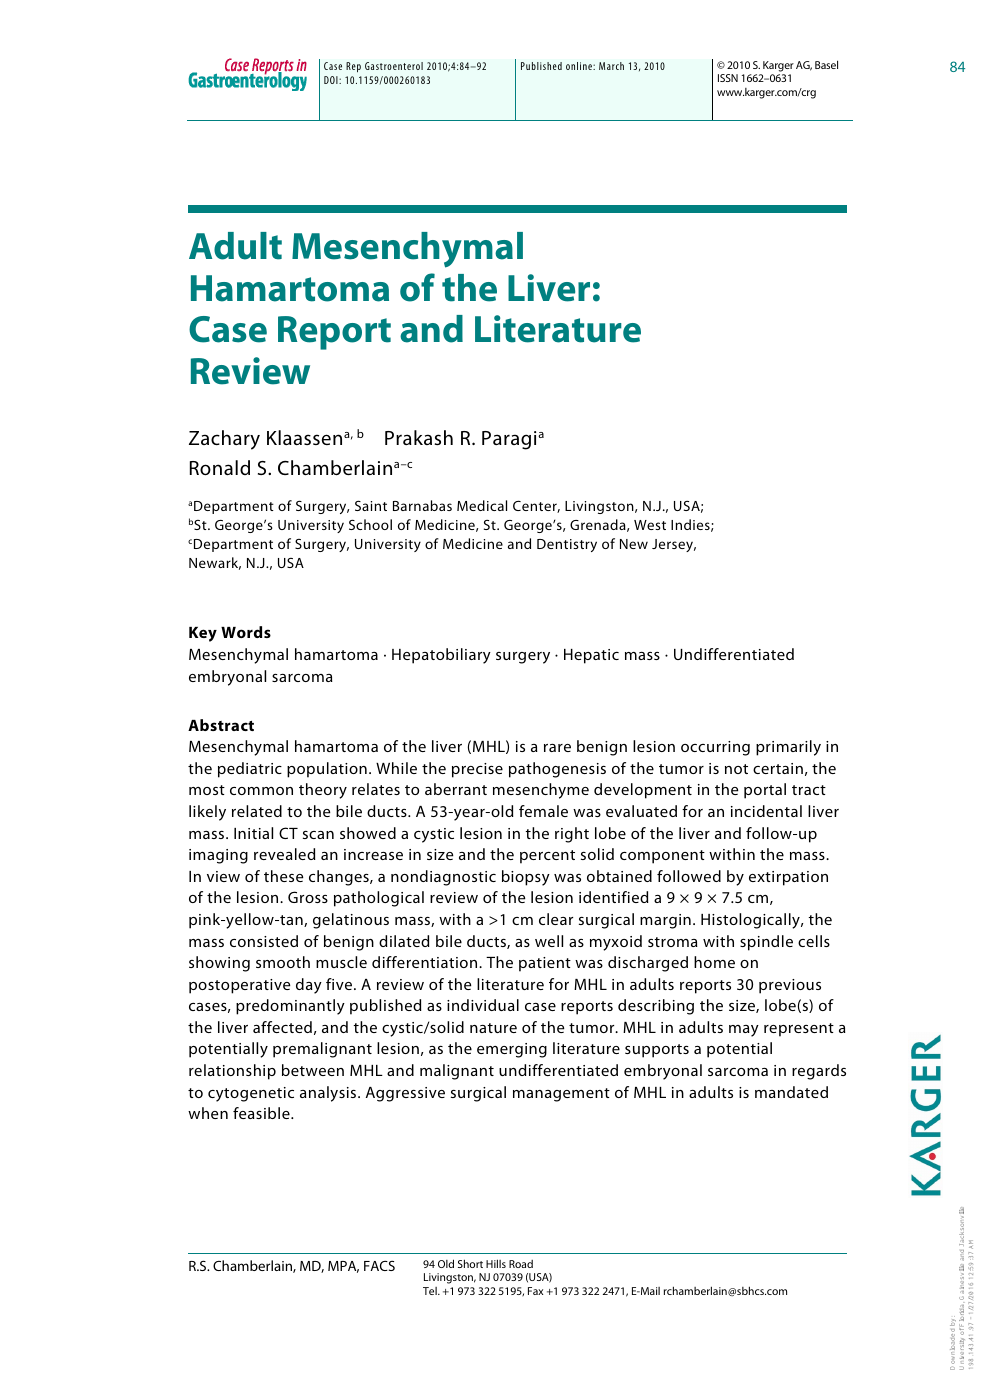 Adult Mesenchymal Hamartoma of the Liver: Case Report and